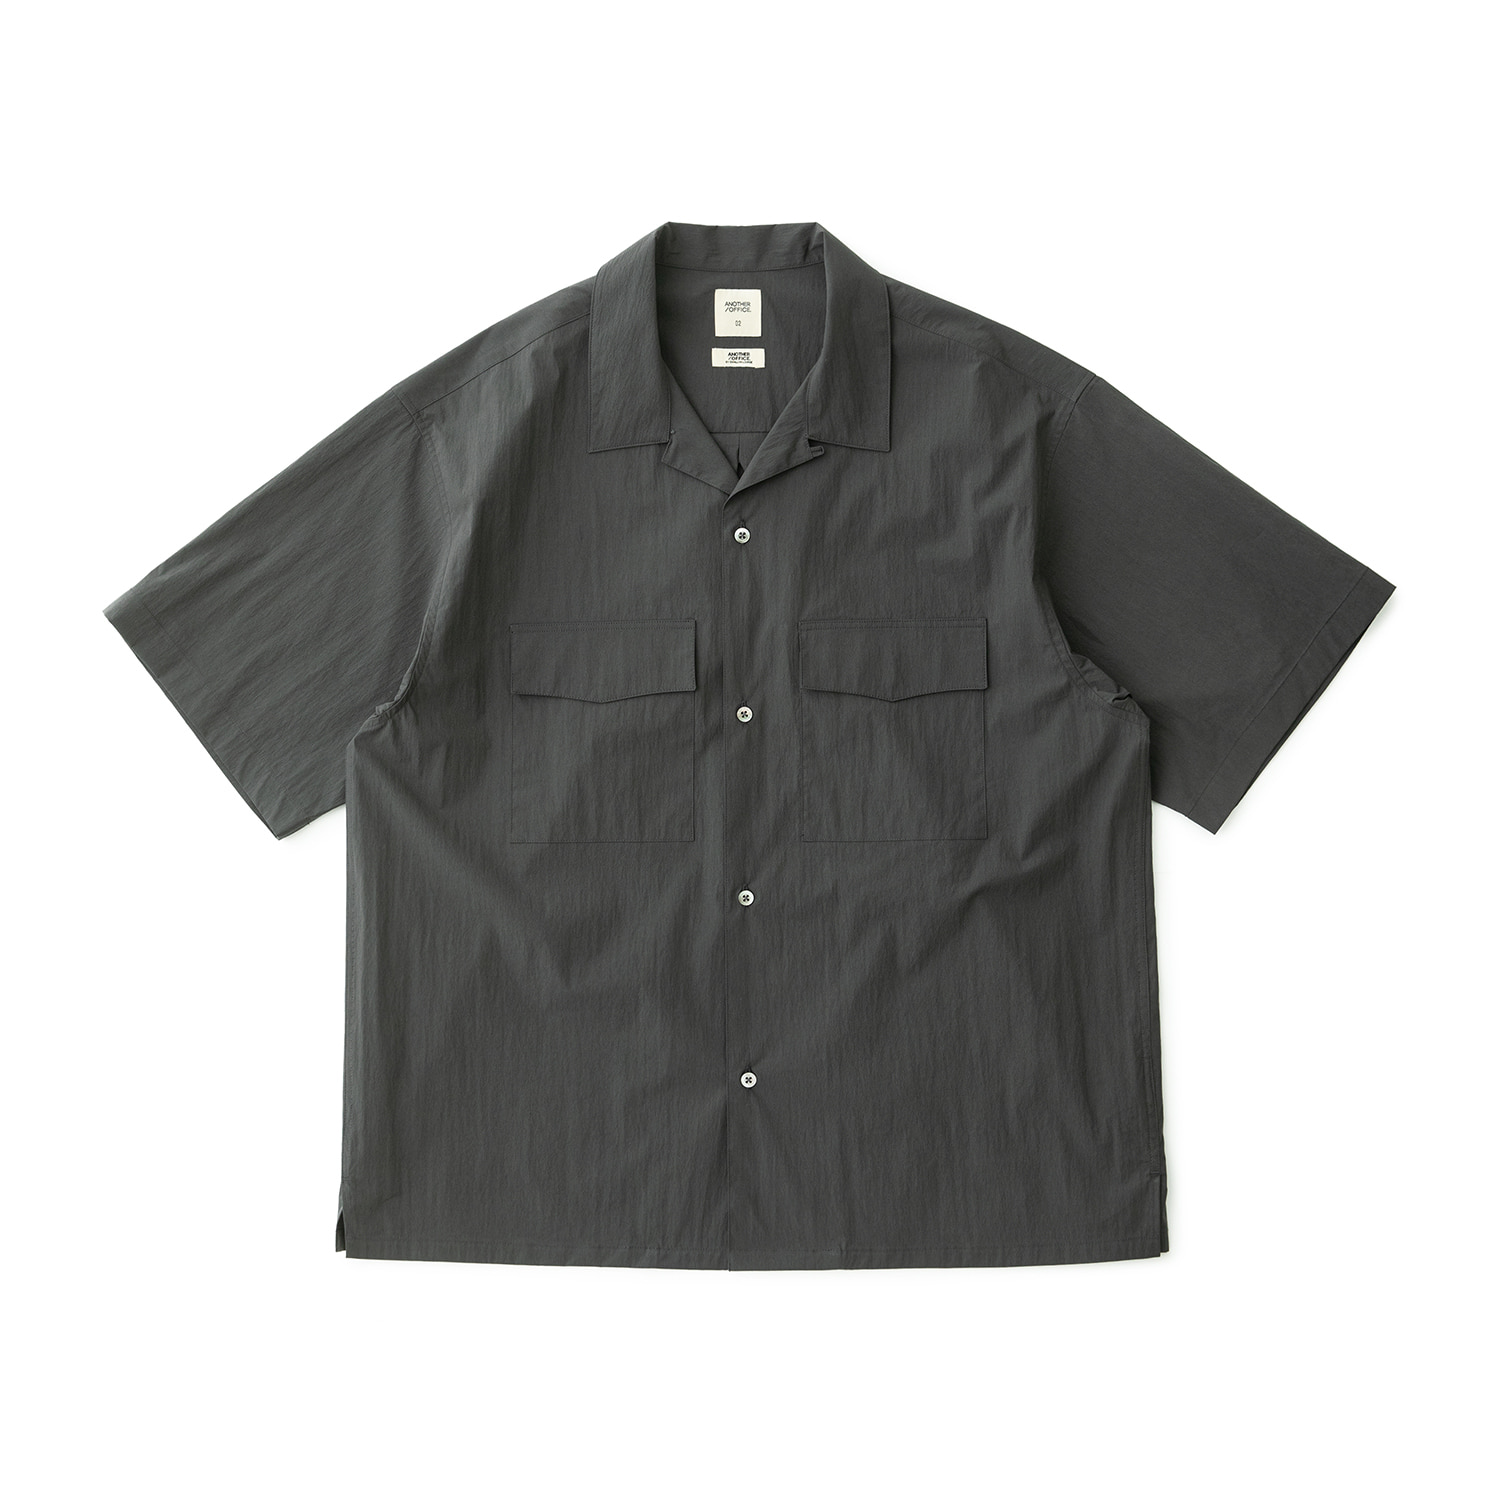 Voyager Open Collar Shirt (Graphite)